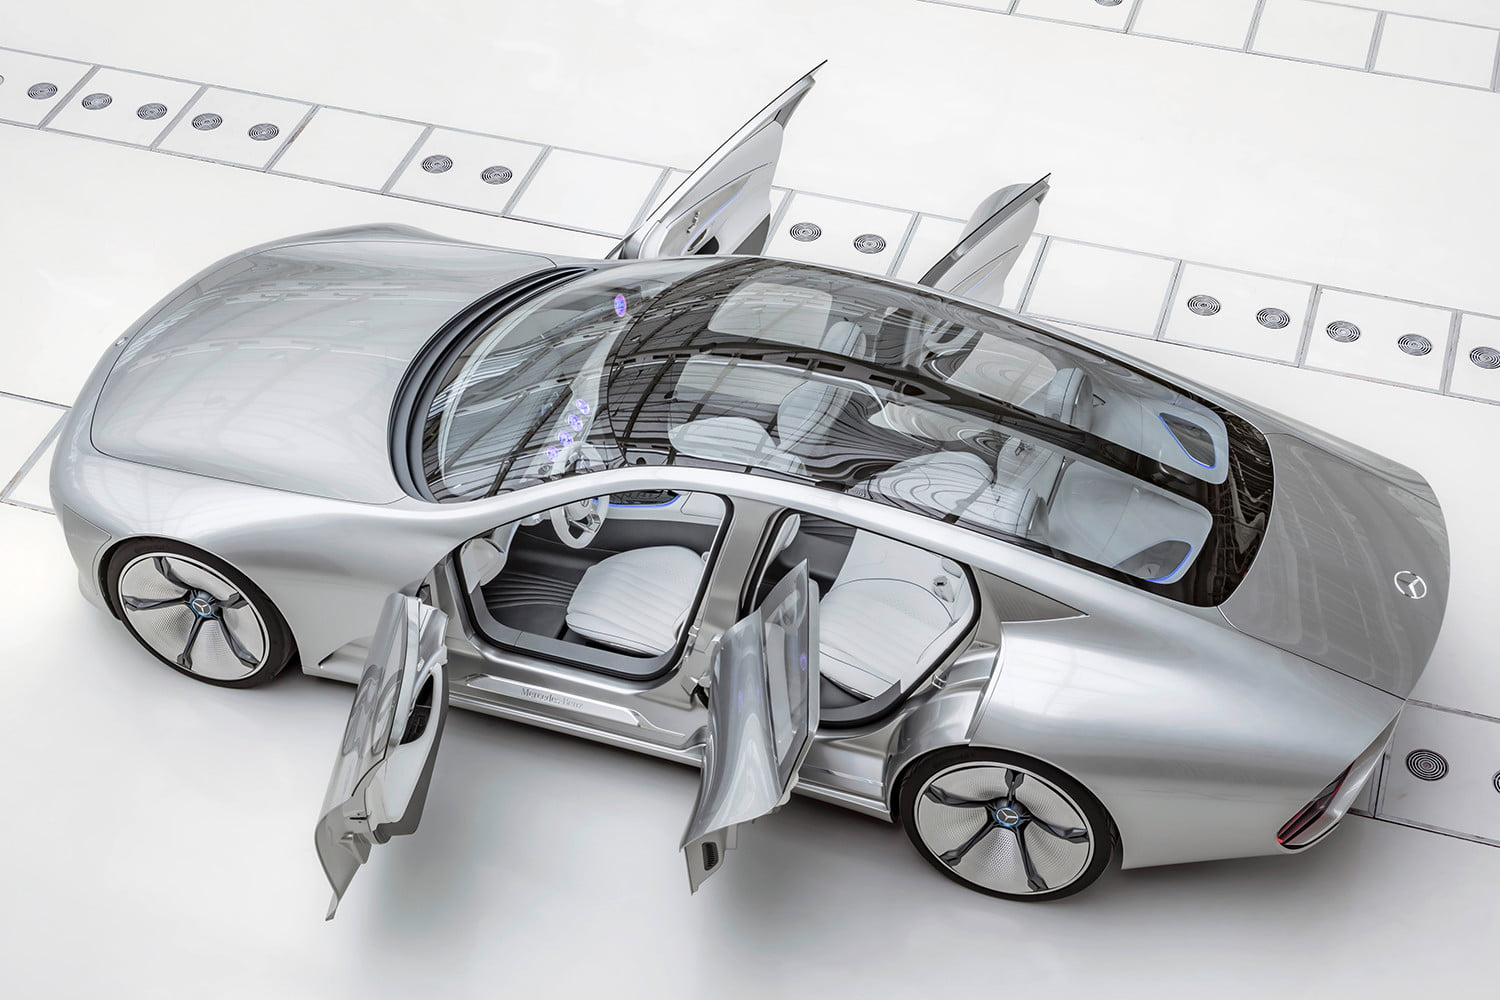 top 5 concept cars of 2015 opinion pictures specs mercedes benz iaa hard 13